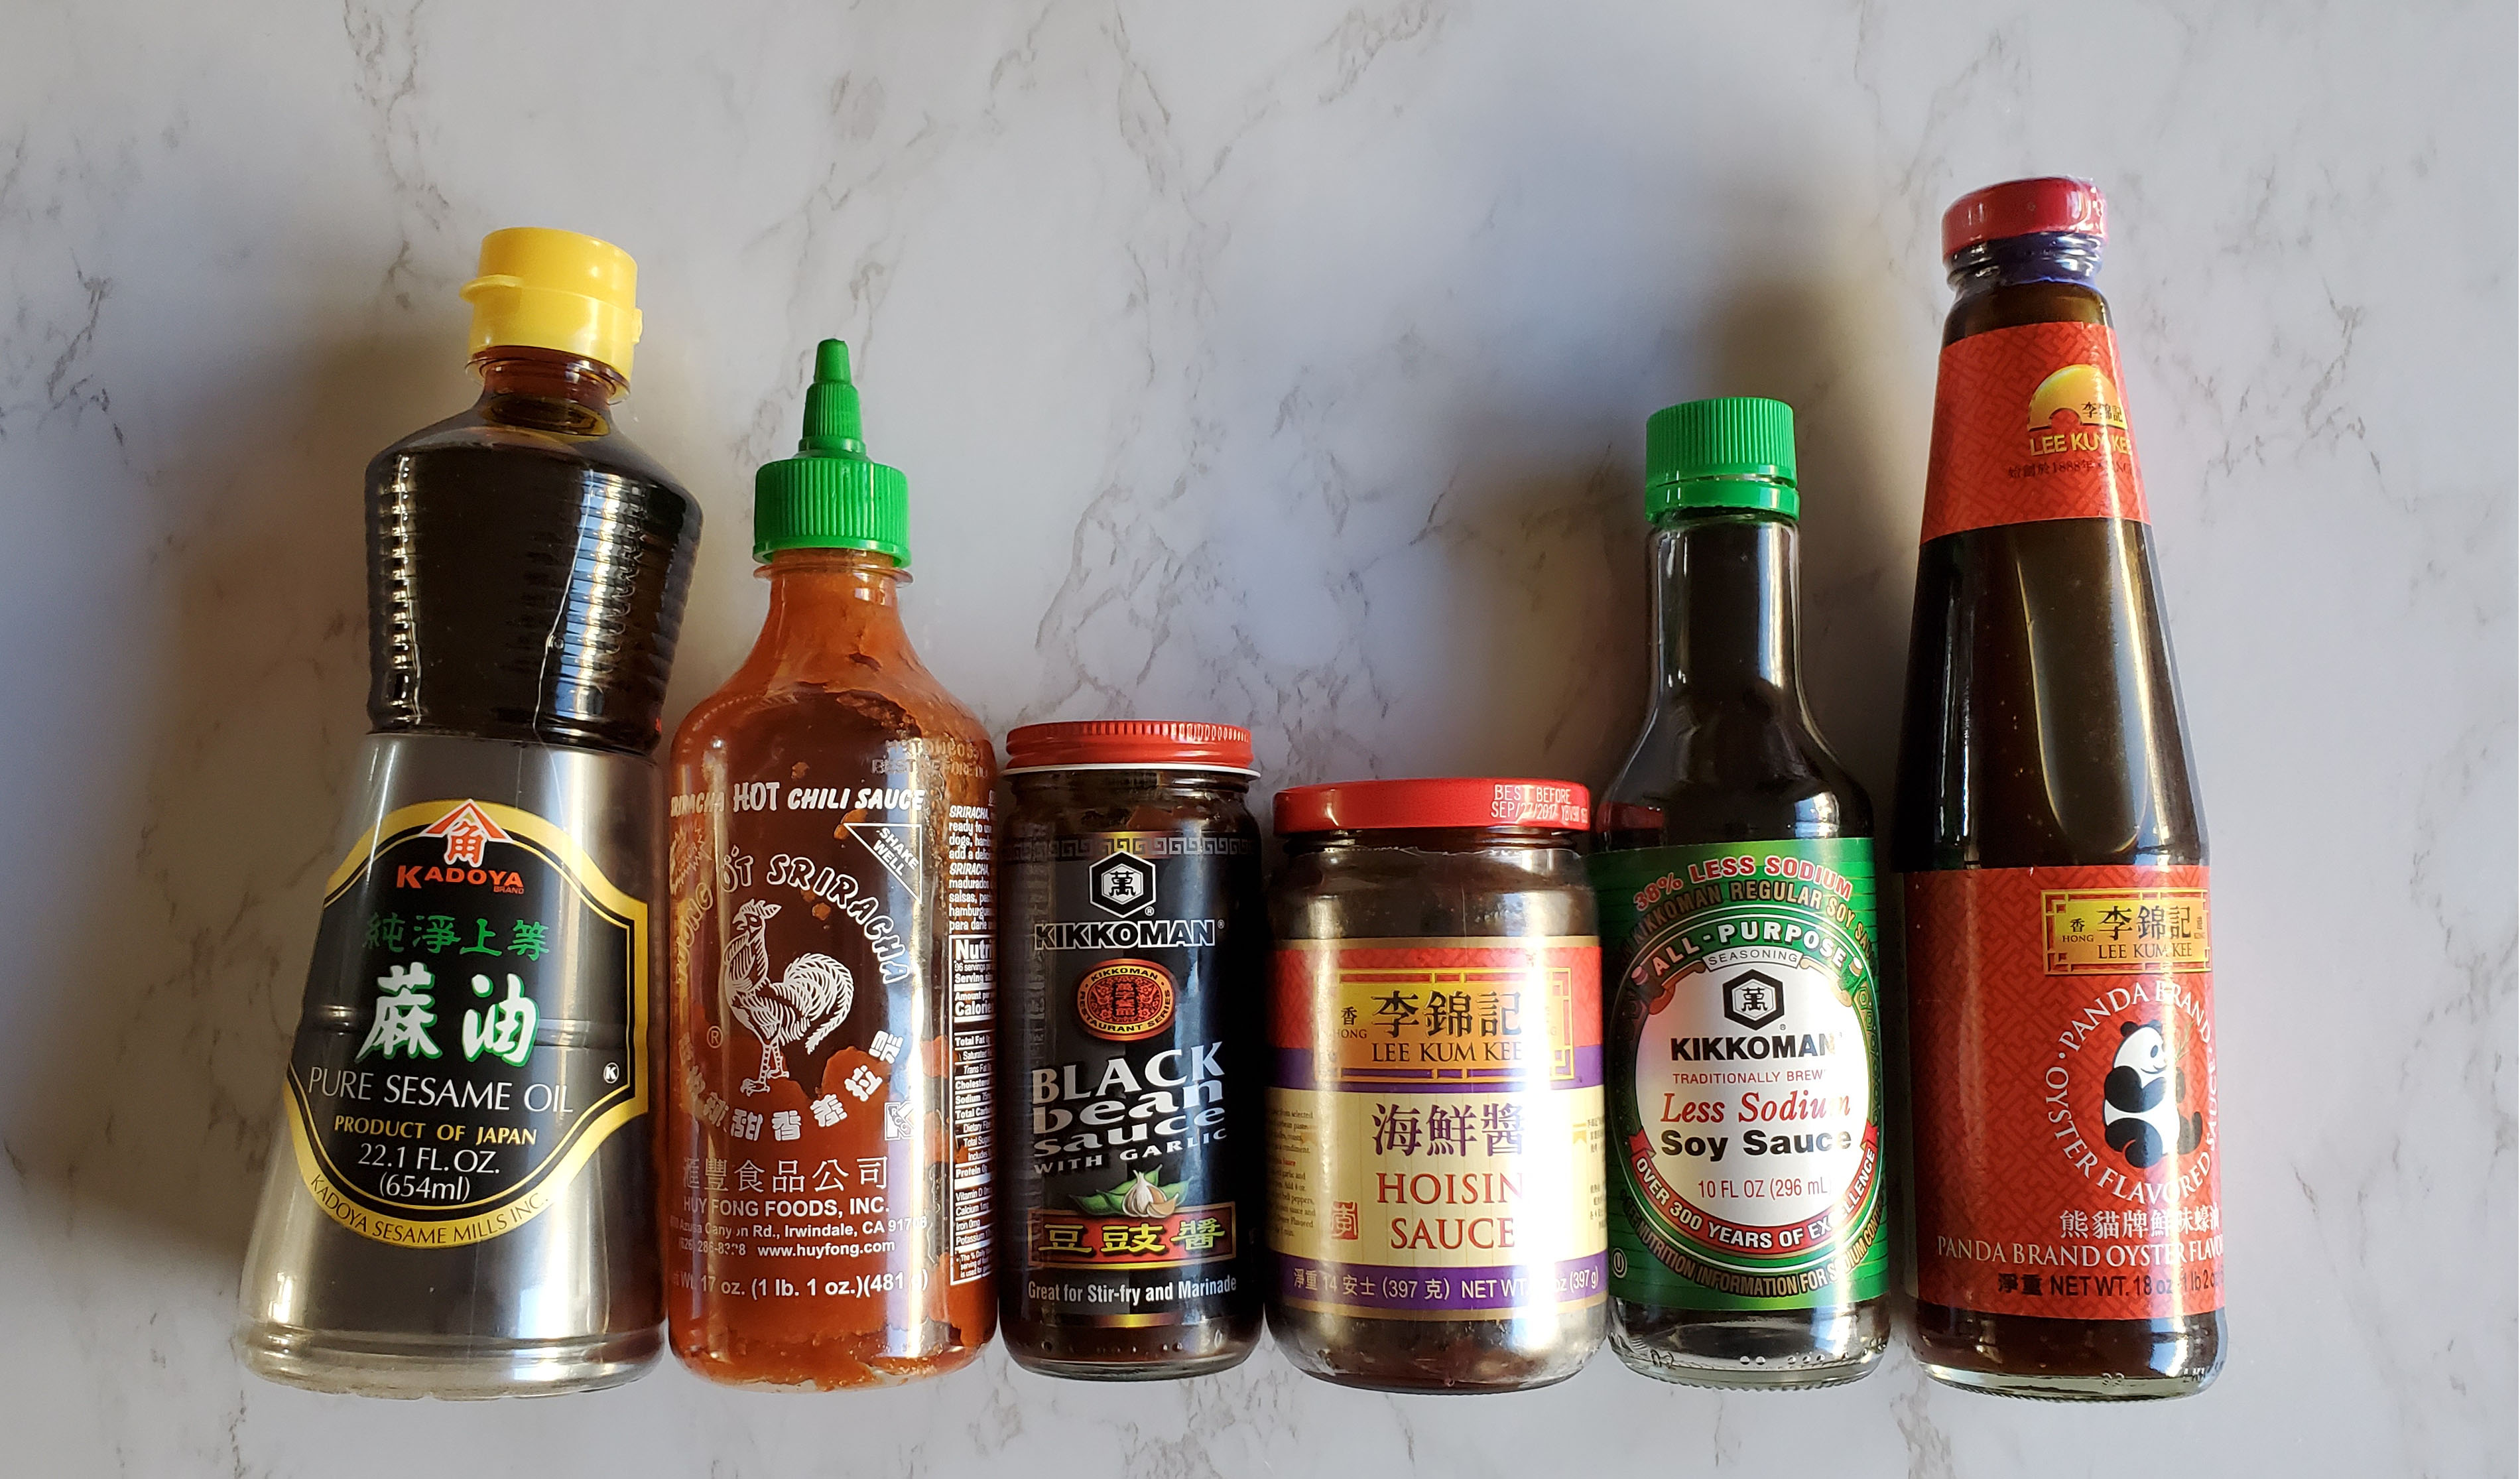 From left to right a bottle of Kadoya Sesame oil, Sriracha, Black bean sauce, hoisin sauce, Kikkoman less sodium soy sauce and oyster sauce all against a white marble background.